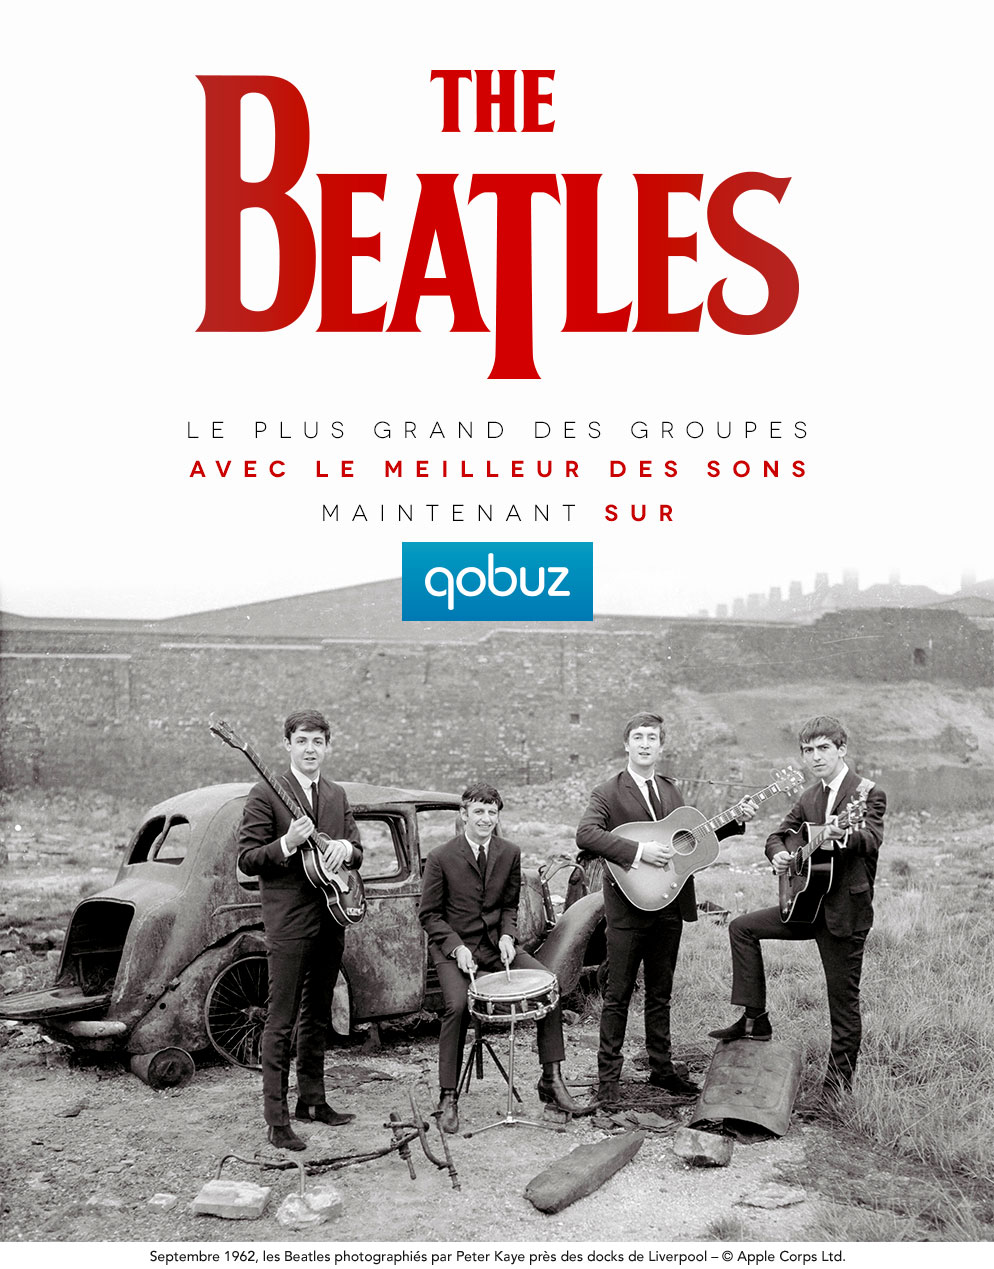 The Beatles now available in 16 bit FLAC from Qobuz | Steve